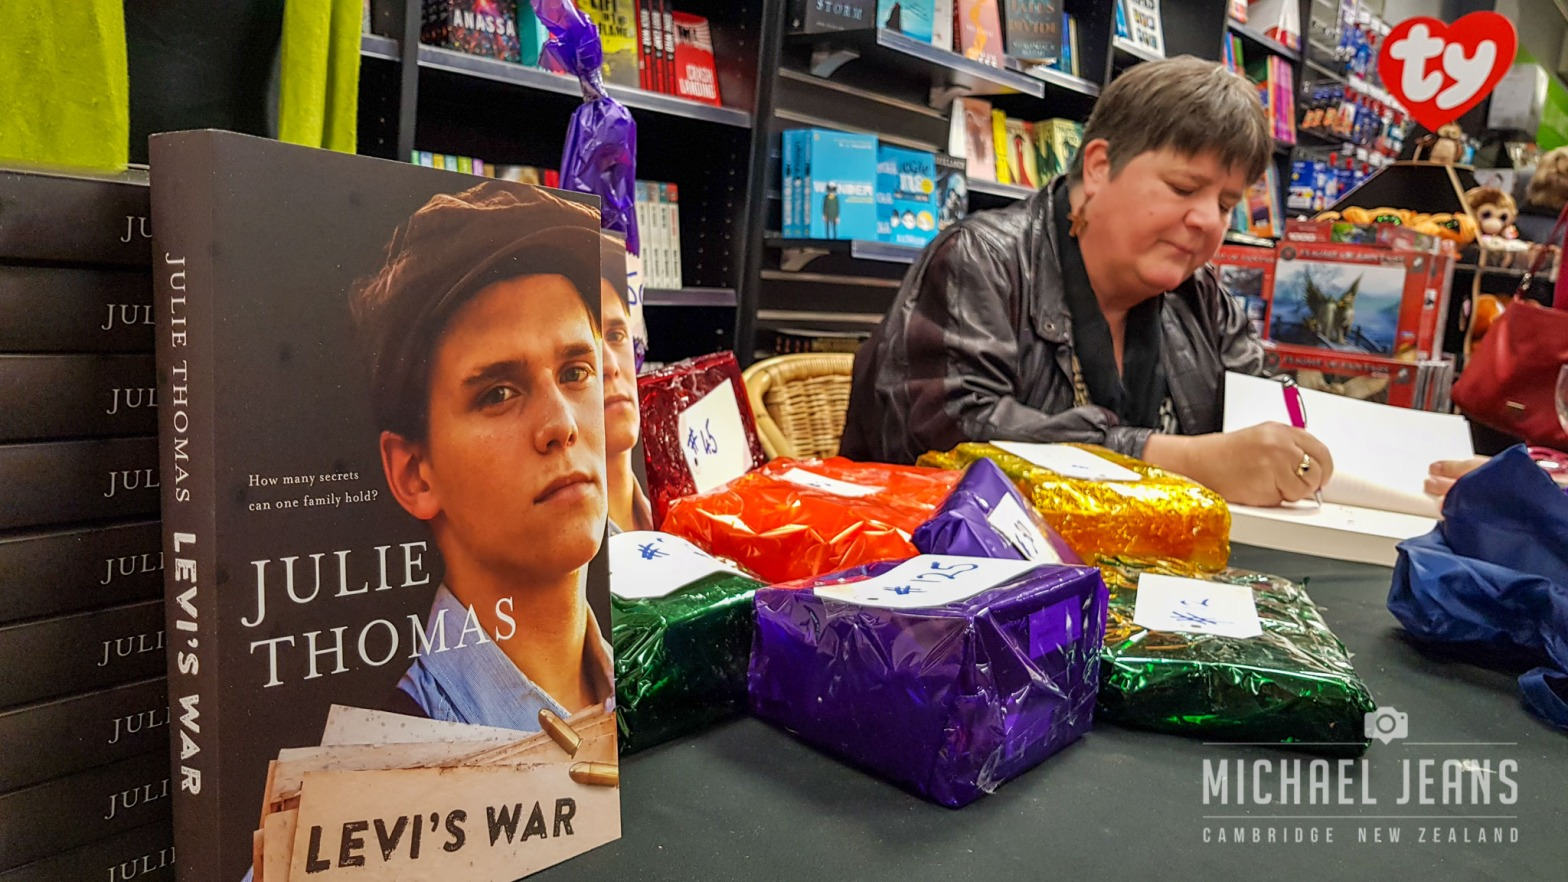 Julie Thomas book signing at the launch of Levi's War 11/6/2018